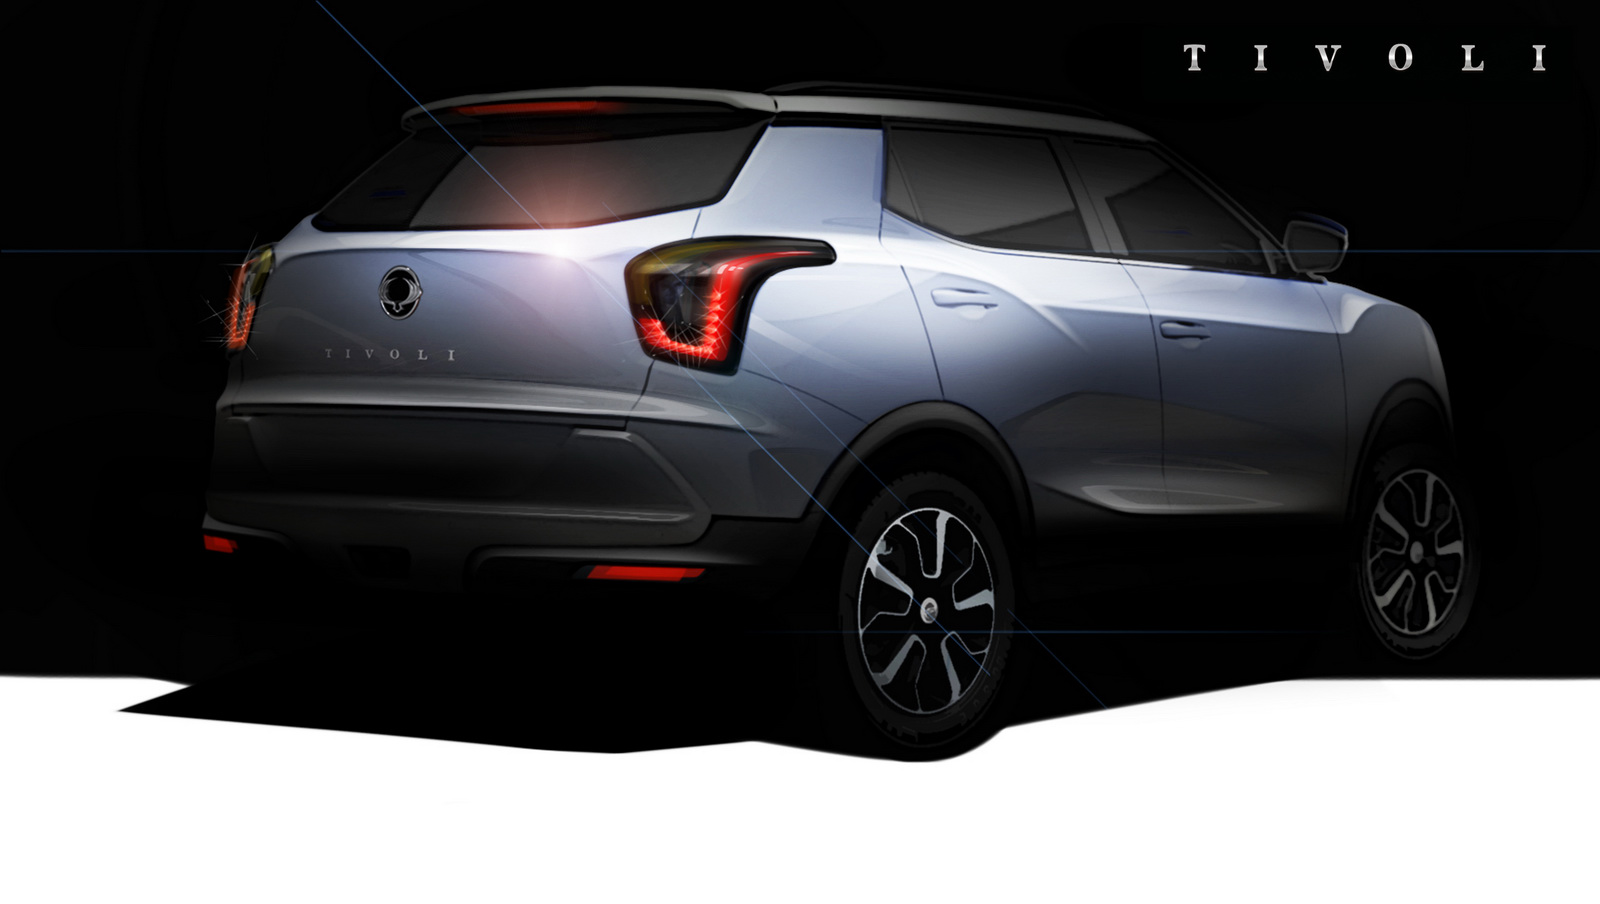 SsangYong's New Small Crossover Called Tivoli, Goes on Sale in 2015